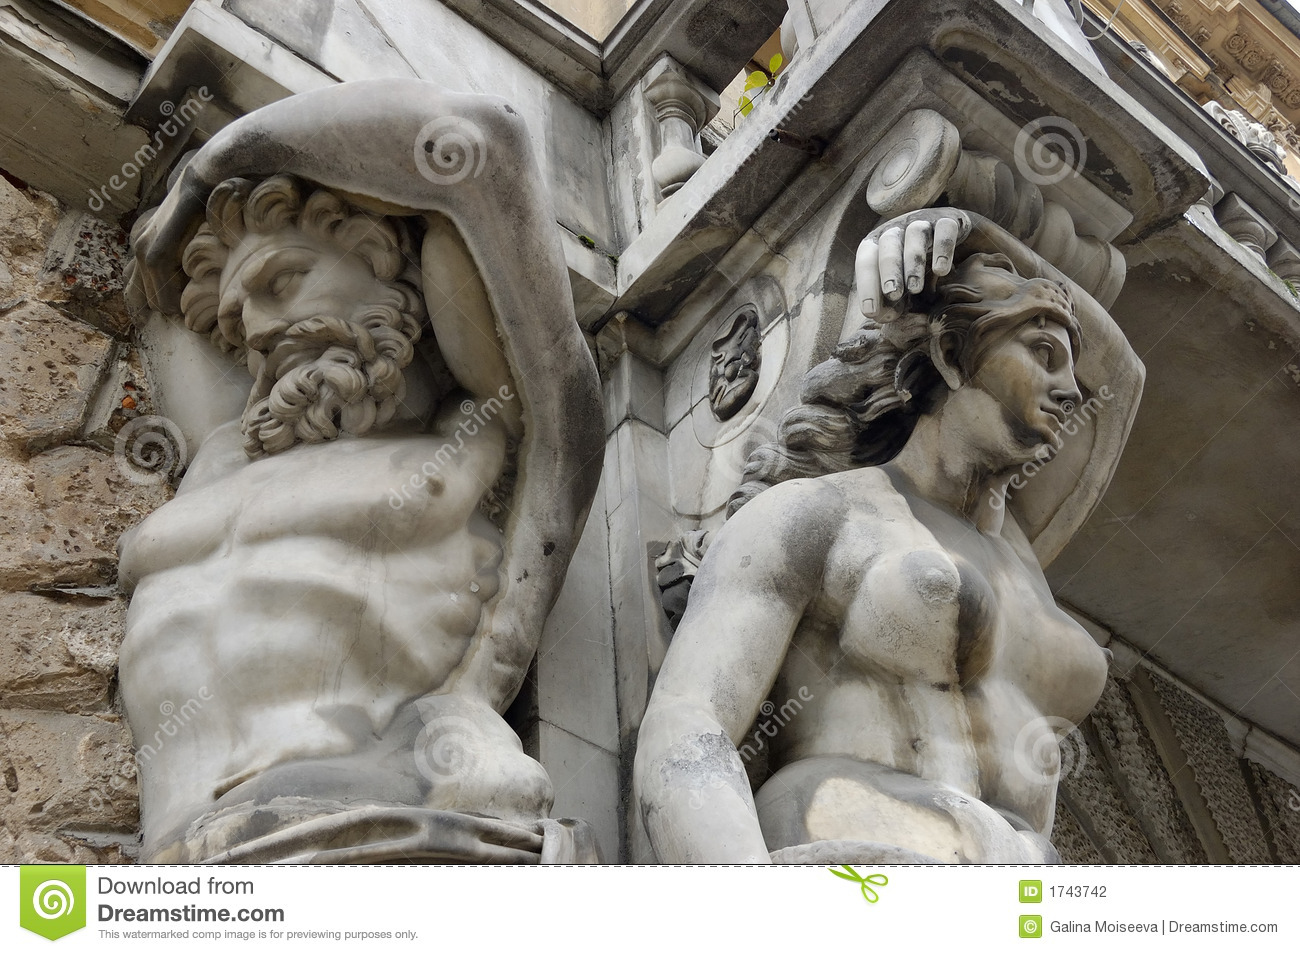 Telamon and a caryatid stock photo. image of saint, curves -.